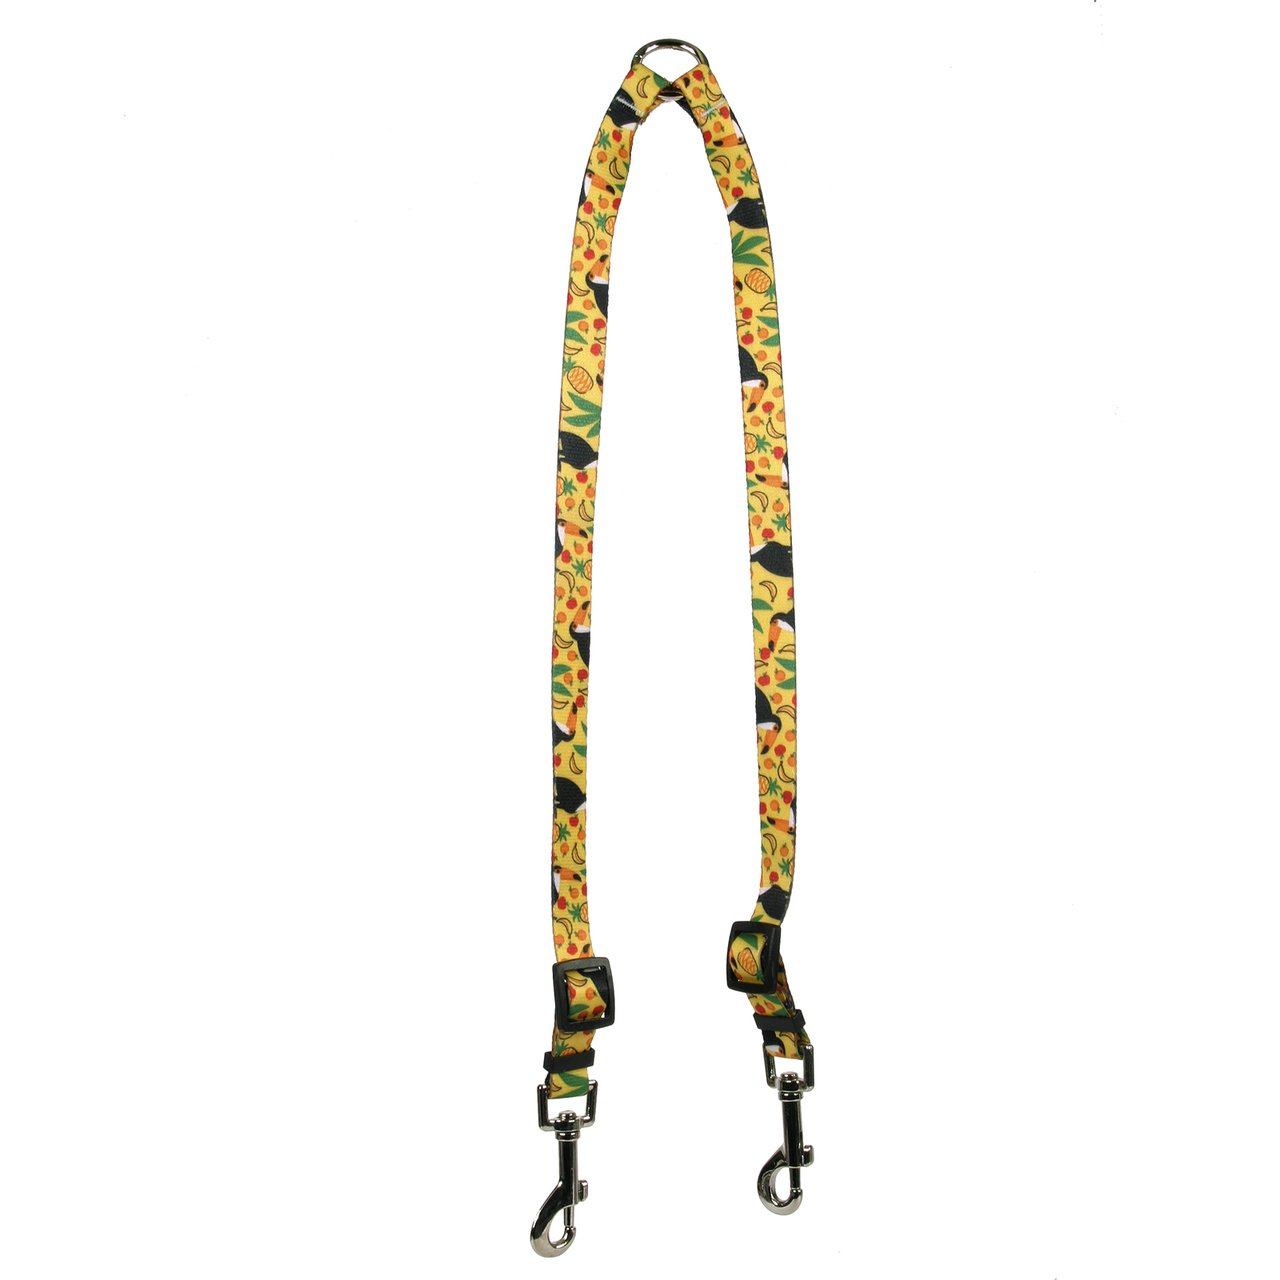 Large Yellow Dog Design Fruity Tucan Coupler Dog Leash 1  Wide And 12 To 20  Long, Large